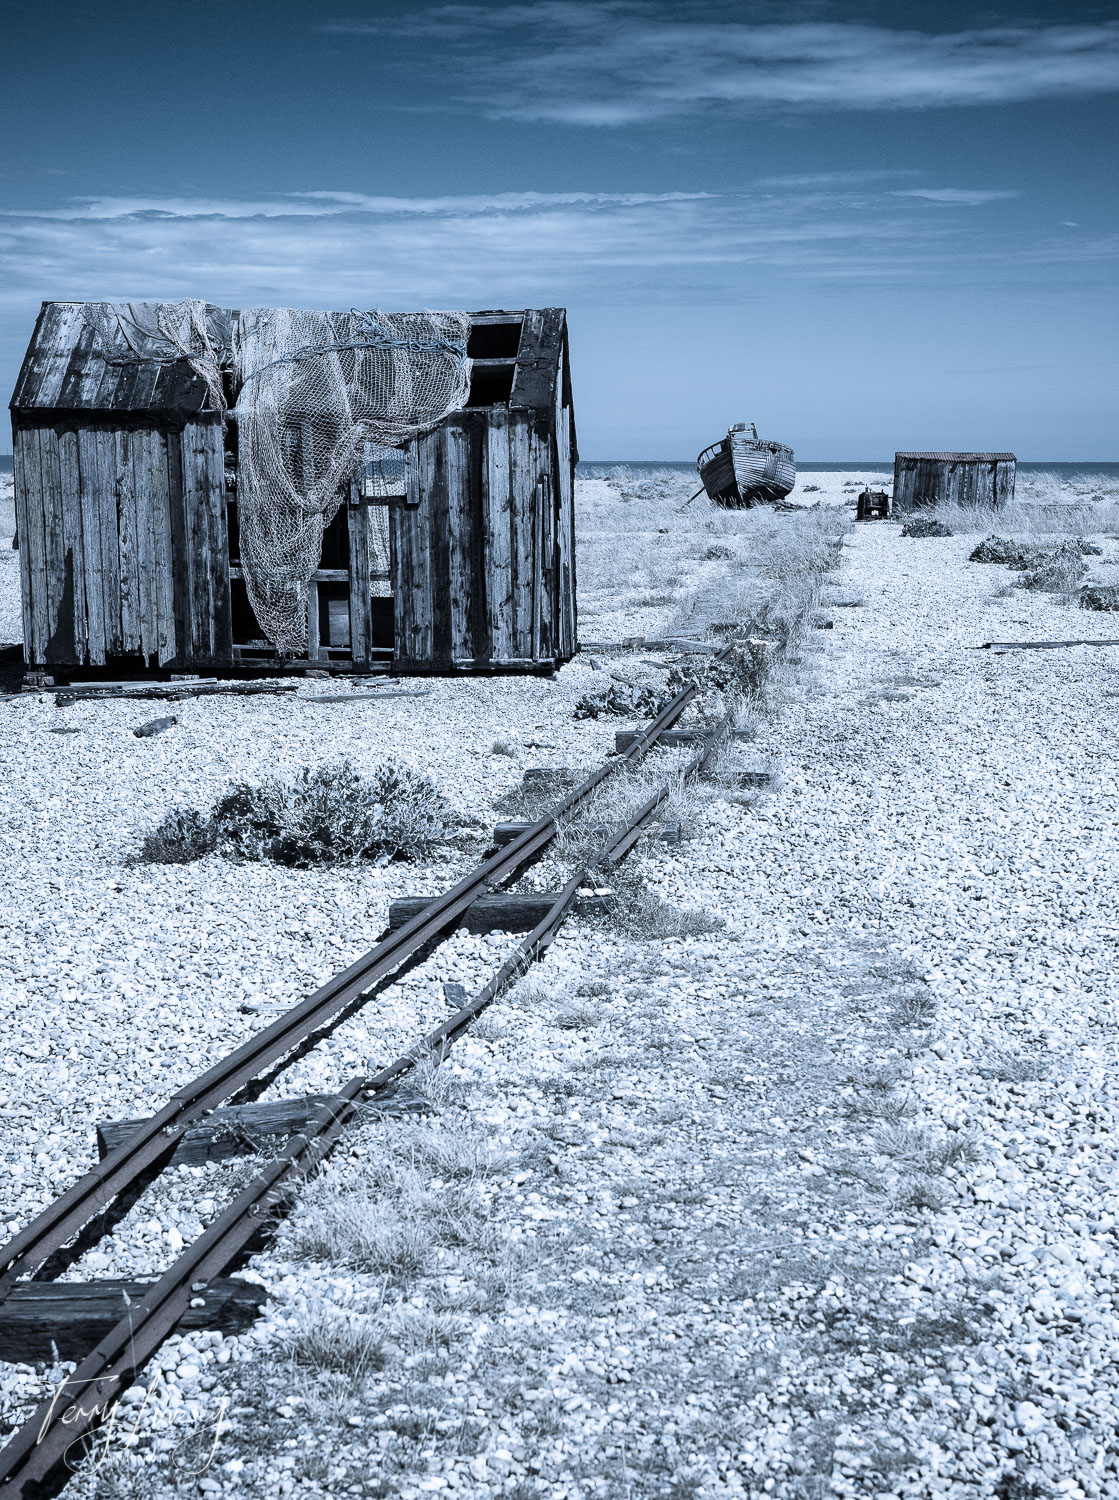 An old, disused track once used for transporting the day's catch, from the boats to the road.